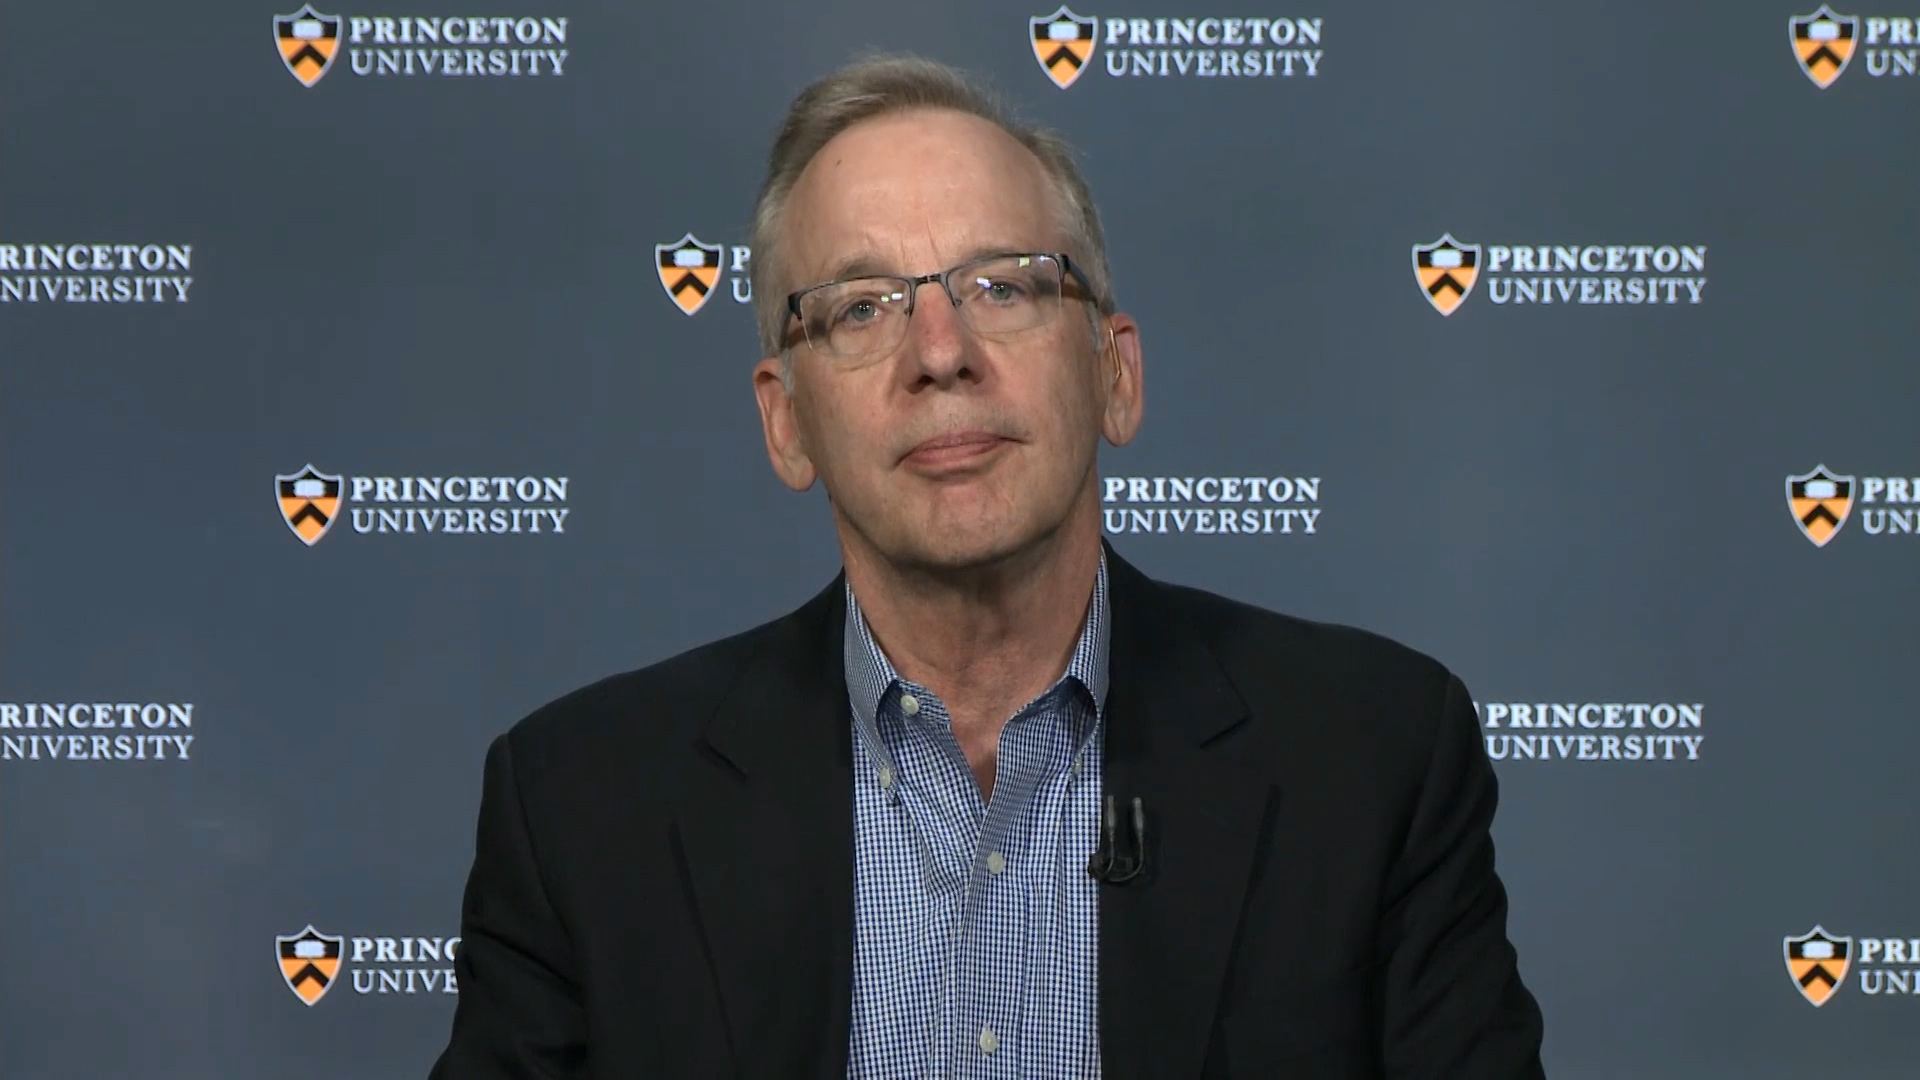 The Fed Is Far From Cutting Rates, Princeton's Dudley Says